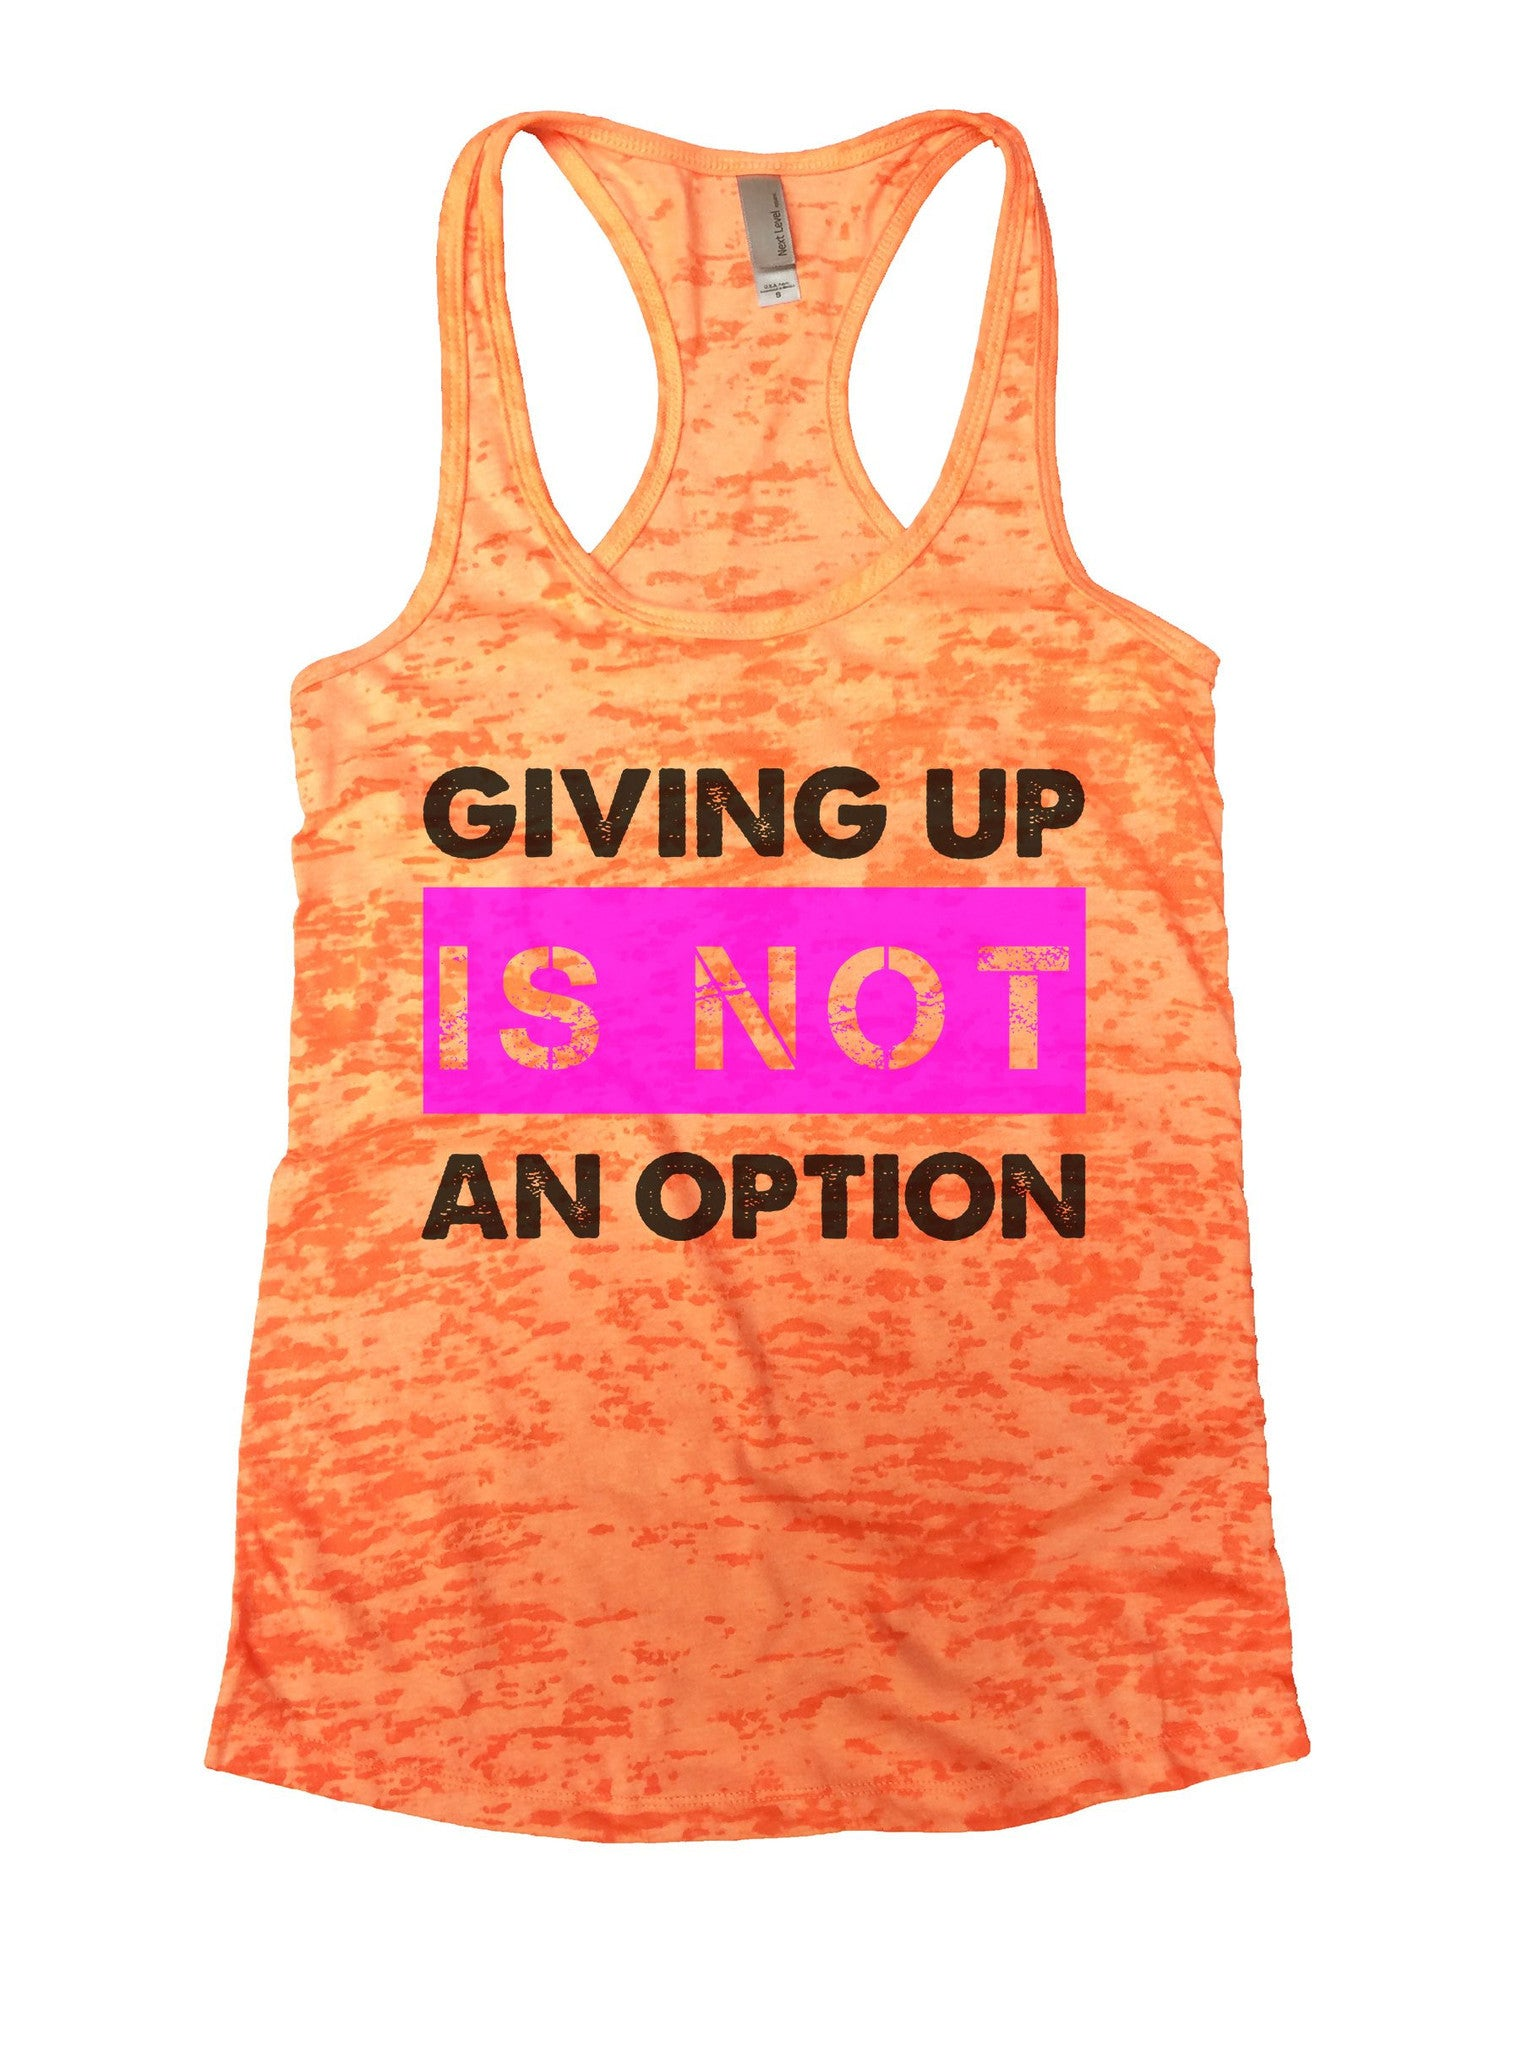 Giving Up Is Not An Option Burnout Tank Top By BurnoutTankTops.com - 844 - Funny Shirts Tank Tops Burnouts and Triblends  - 3